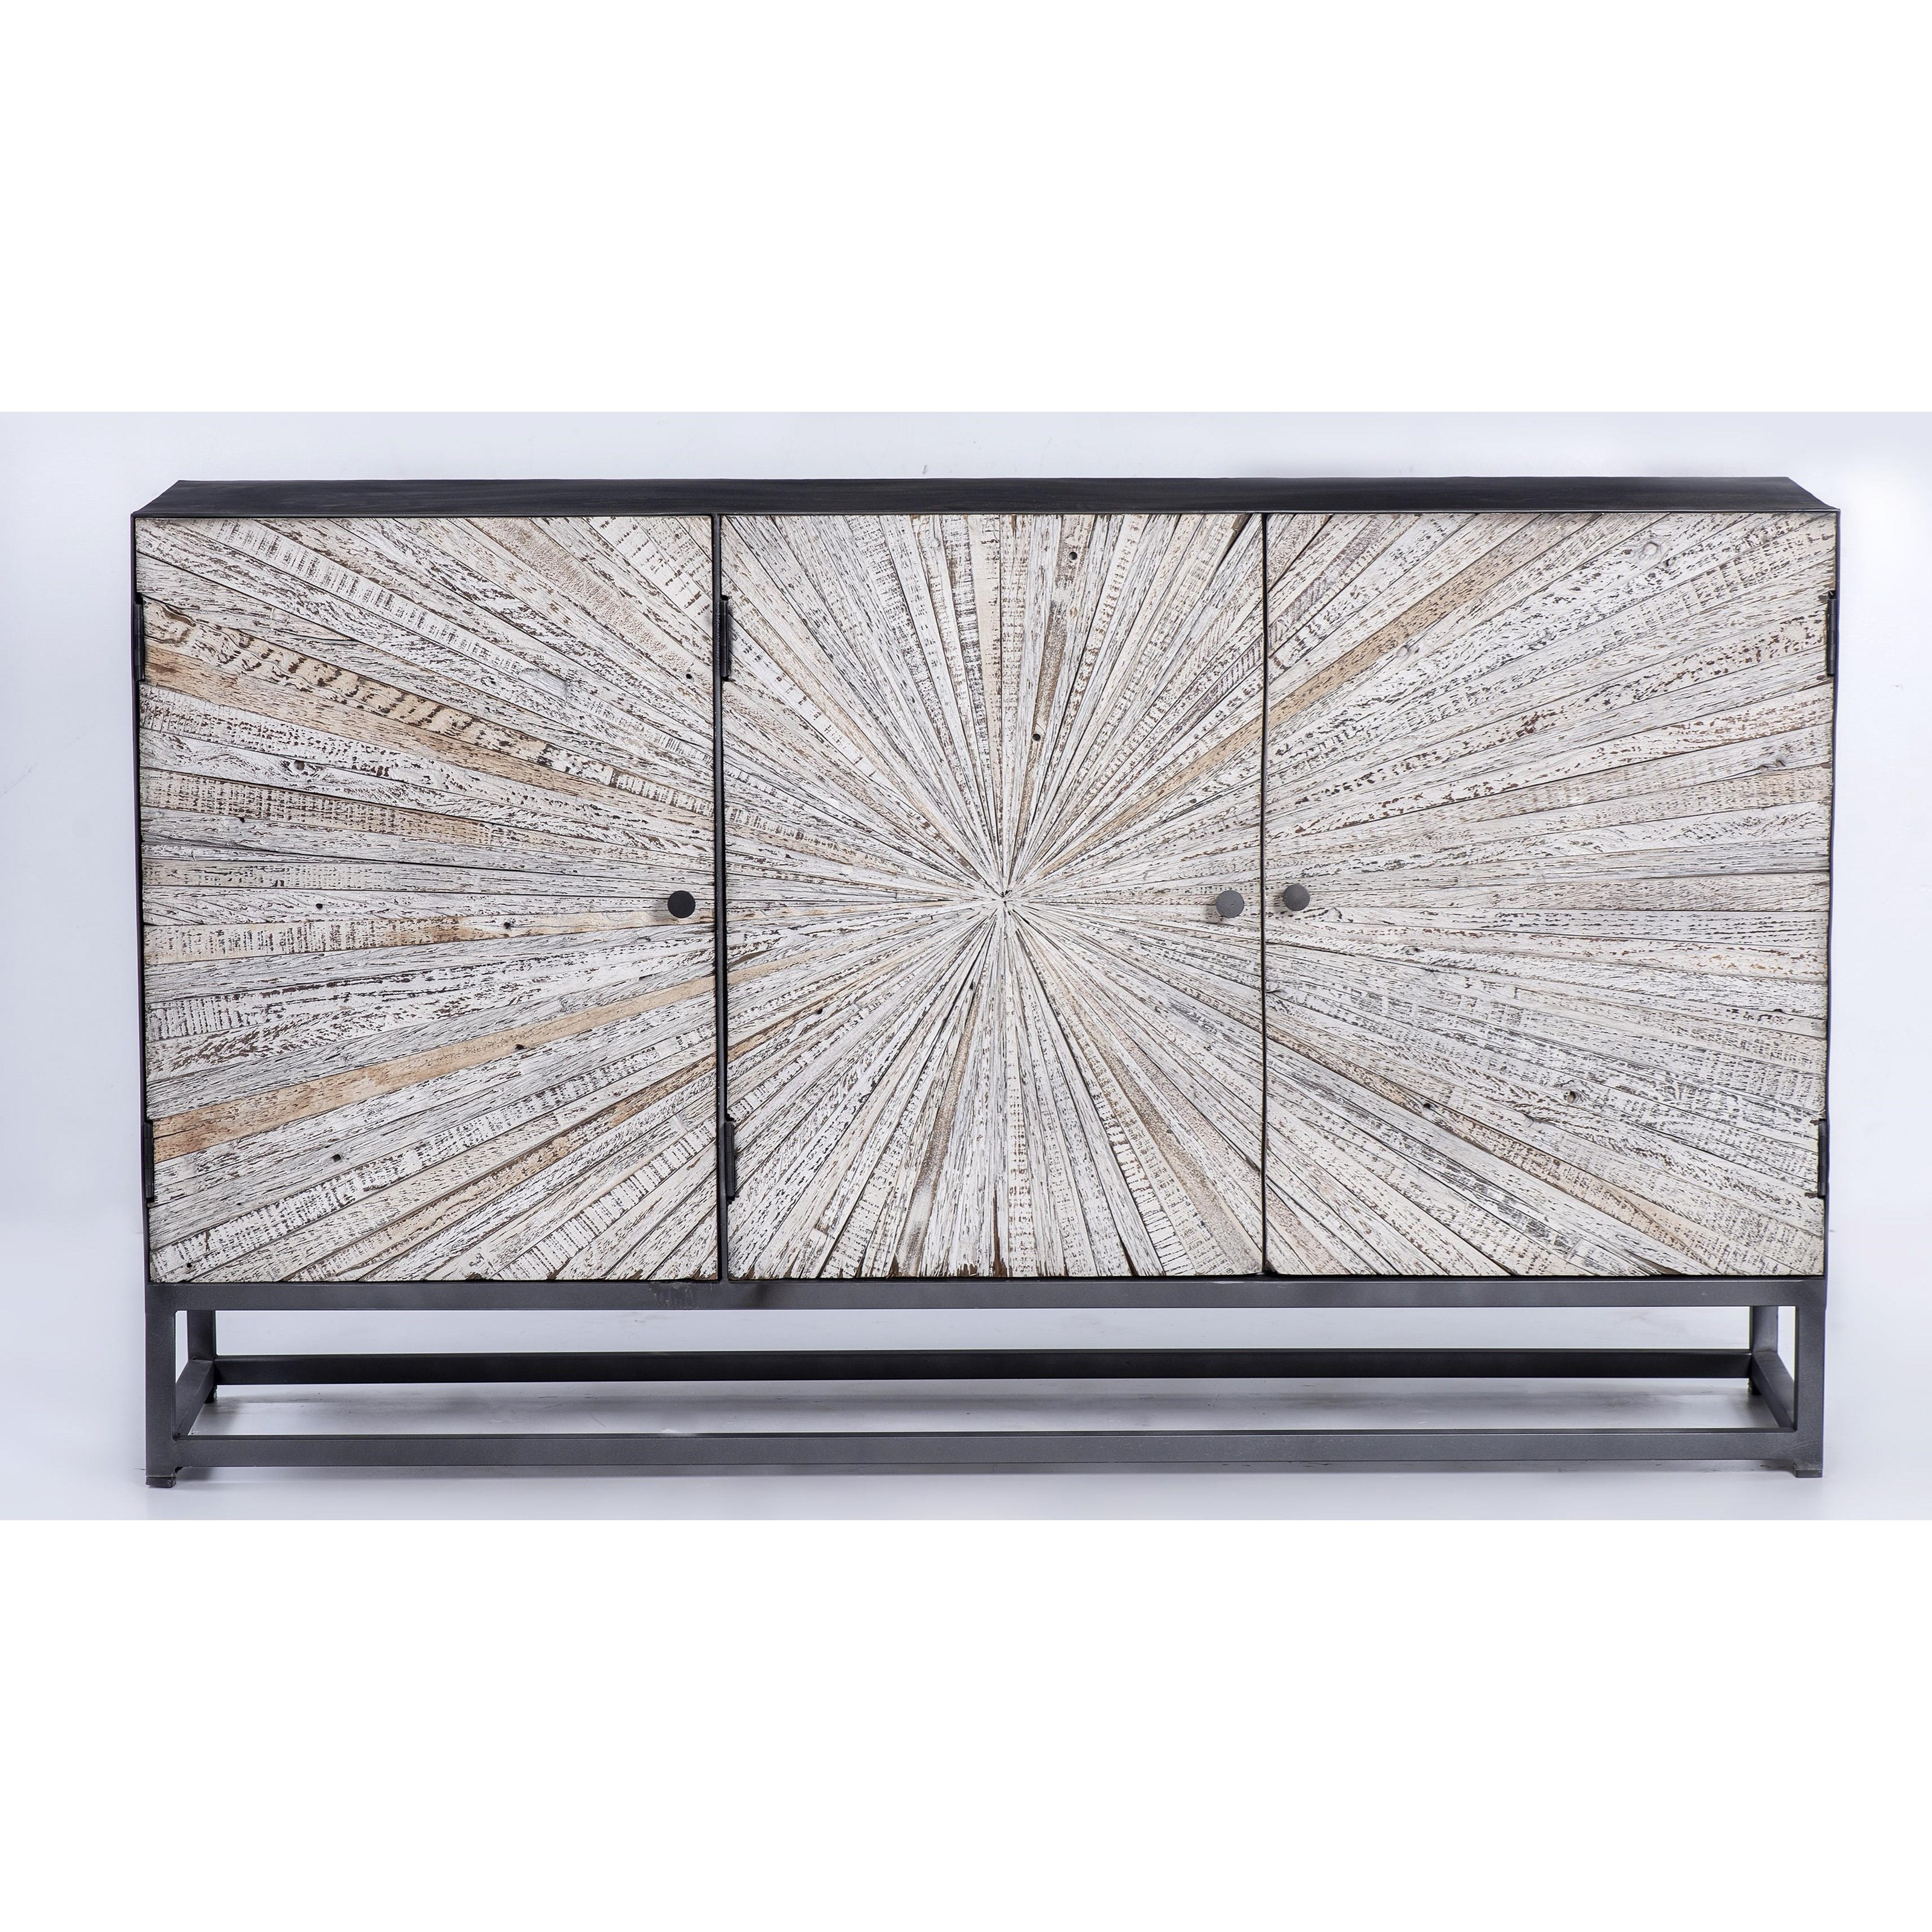 Astral Plains Reclaimed 3 Door Accent Cabinet by Jofran at Lapeer Furniture & Mattress Center